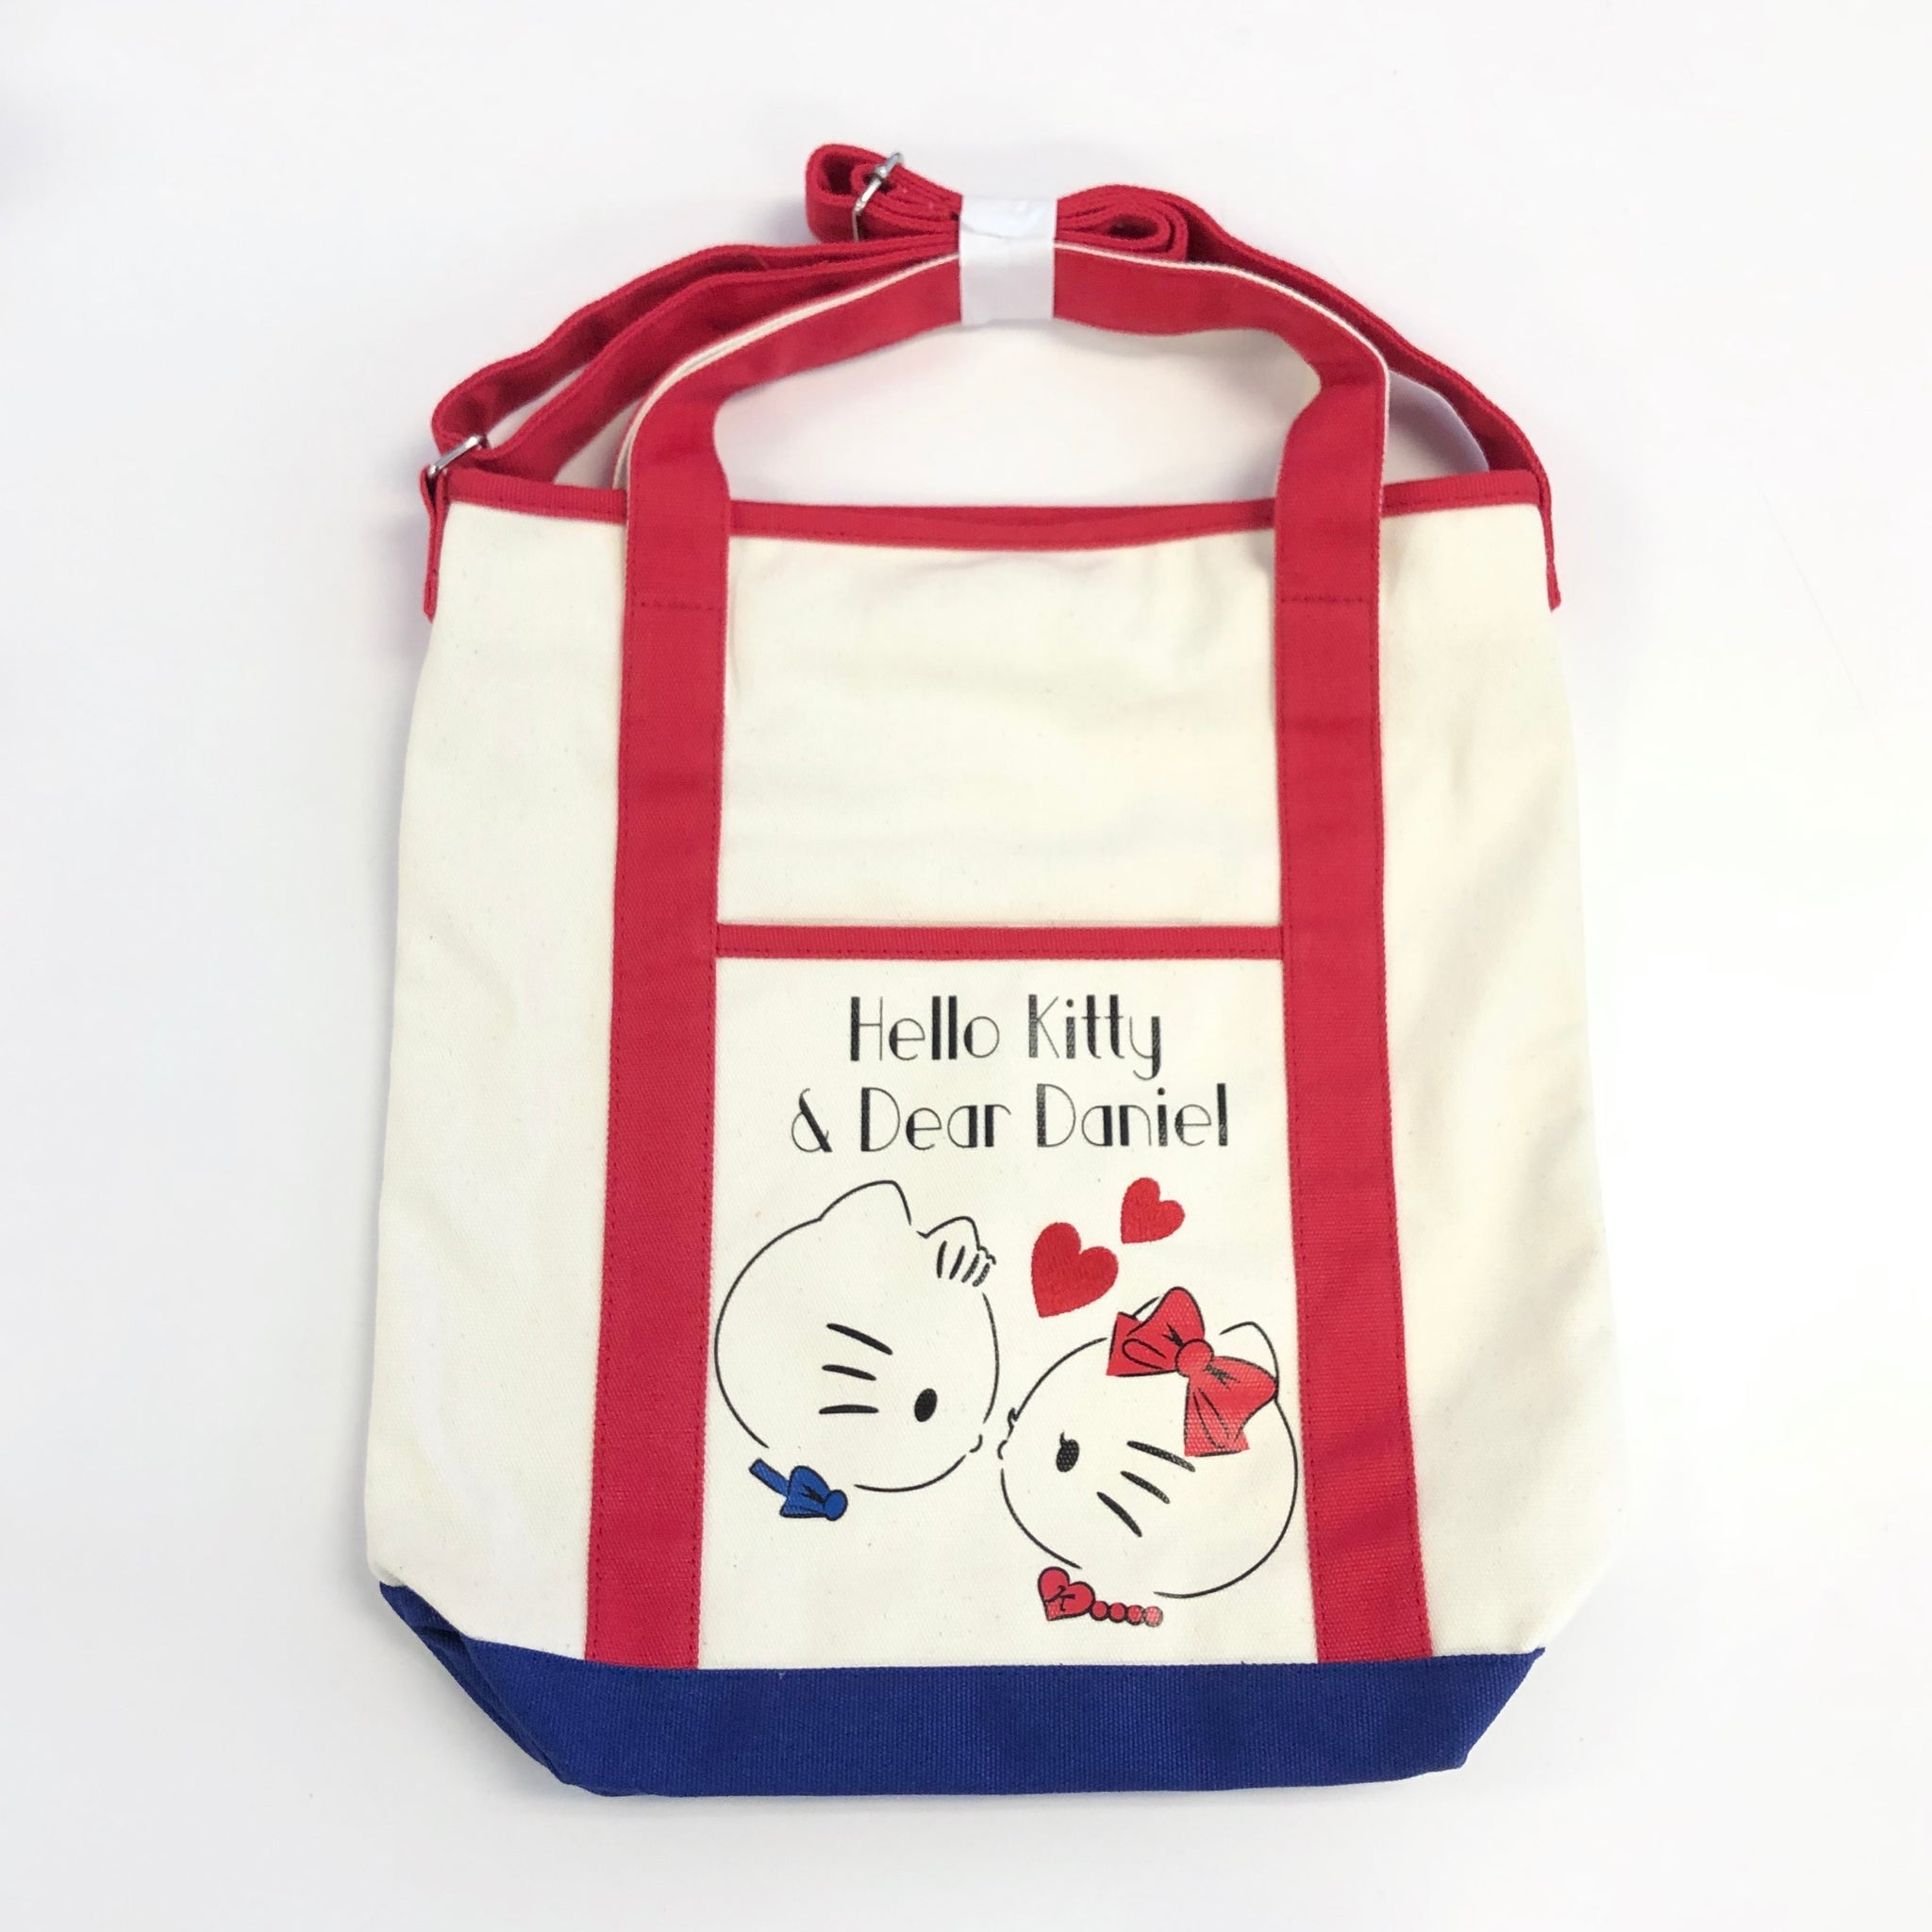 Hello Kitty & Dear Daniel Medium Tote Bag